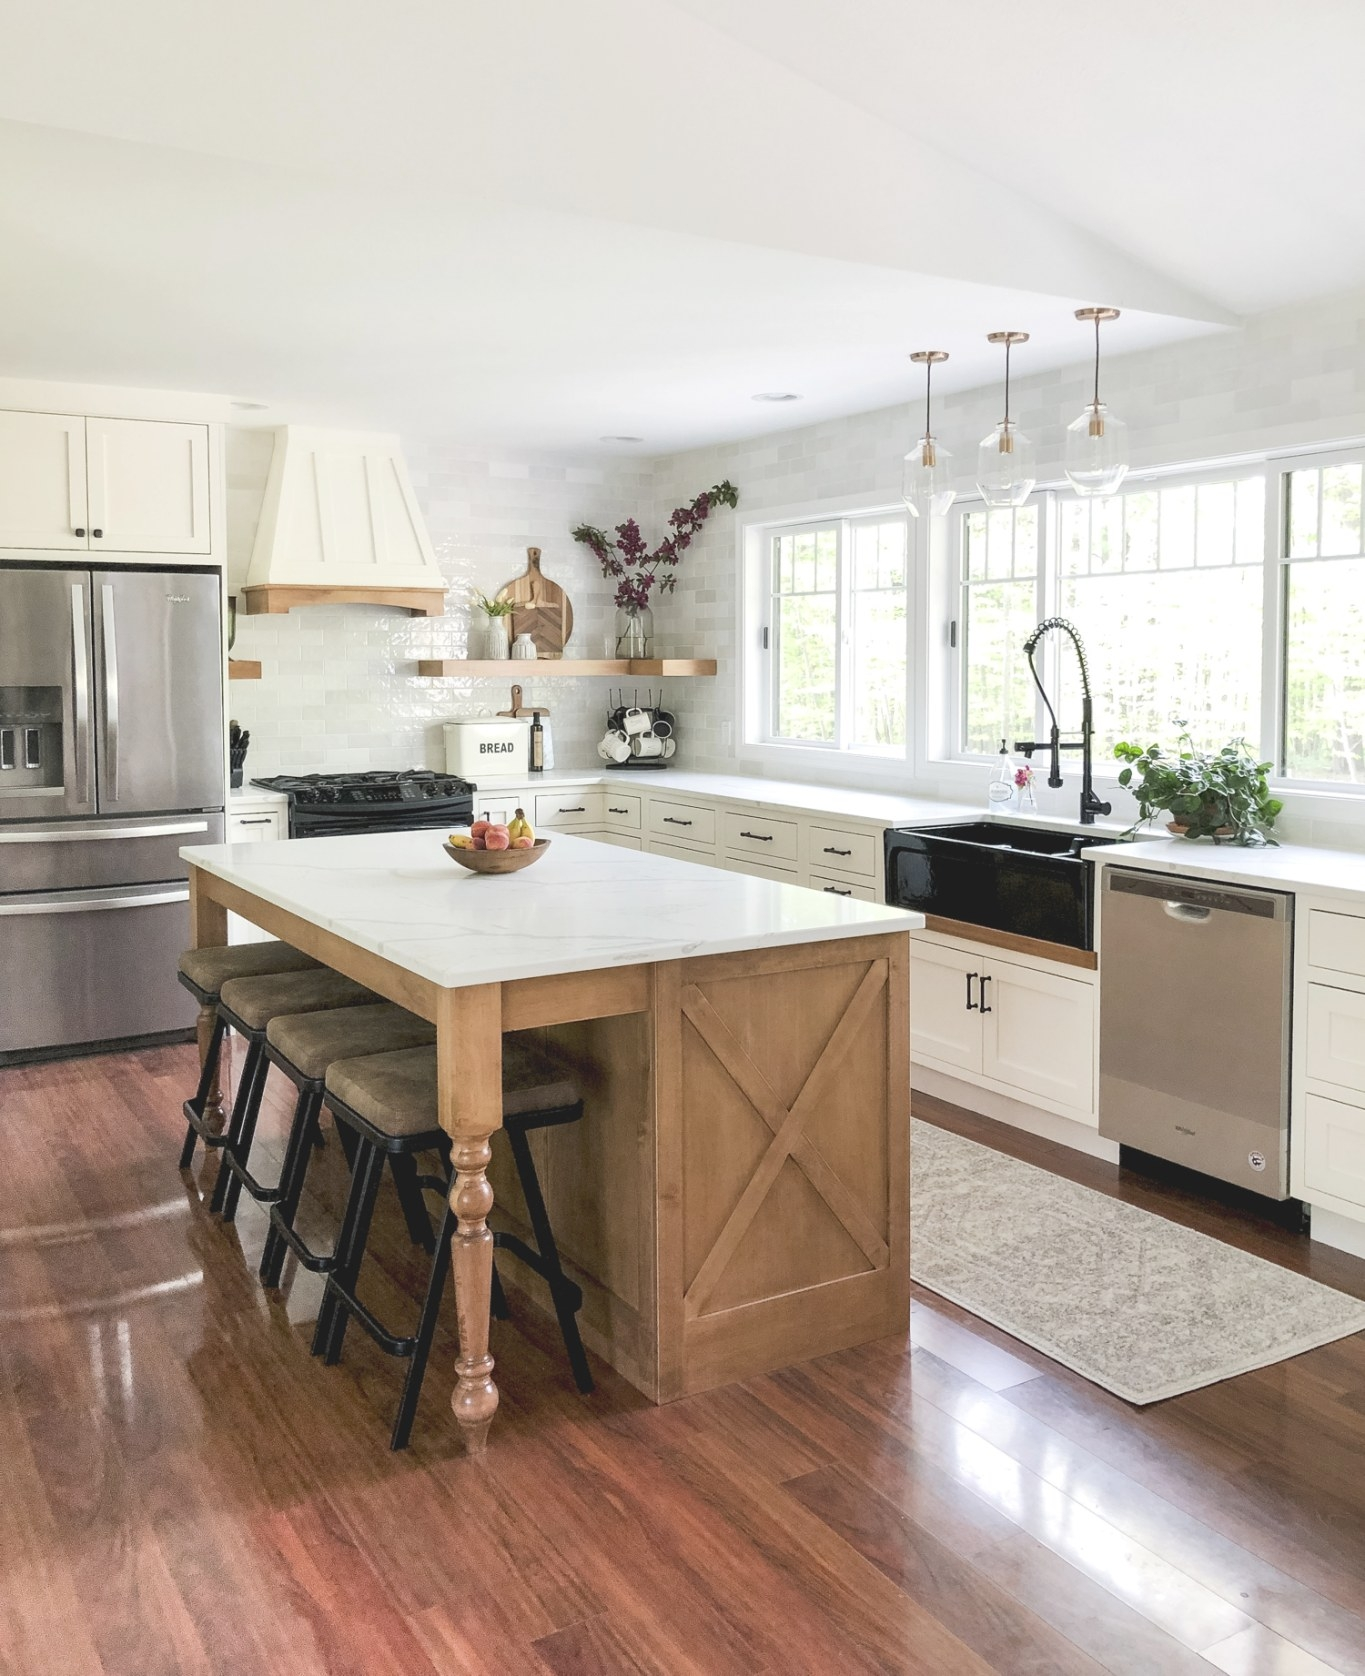 Designing A Modern Farmhouse Kitchen With A Black for Small Modern Farmhouse Kitchen